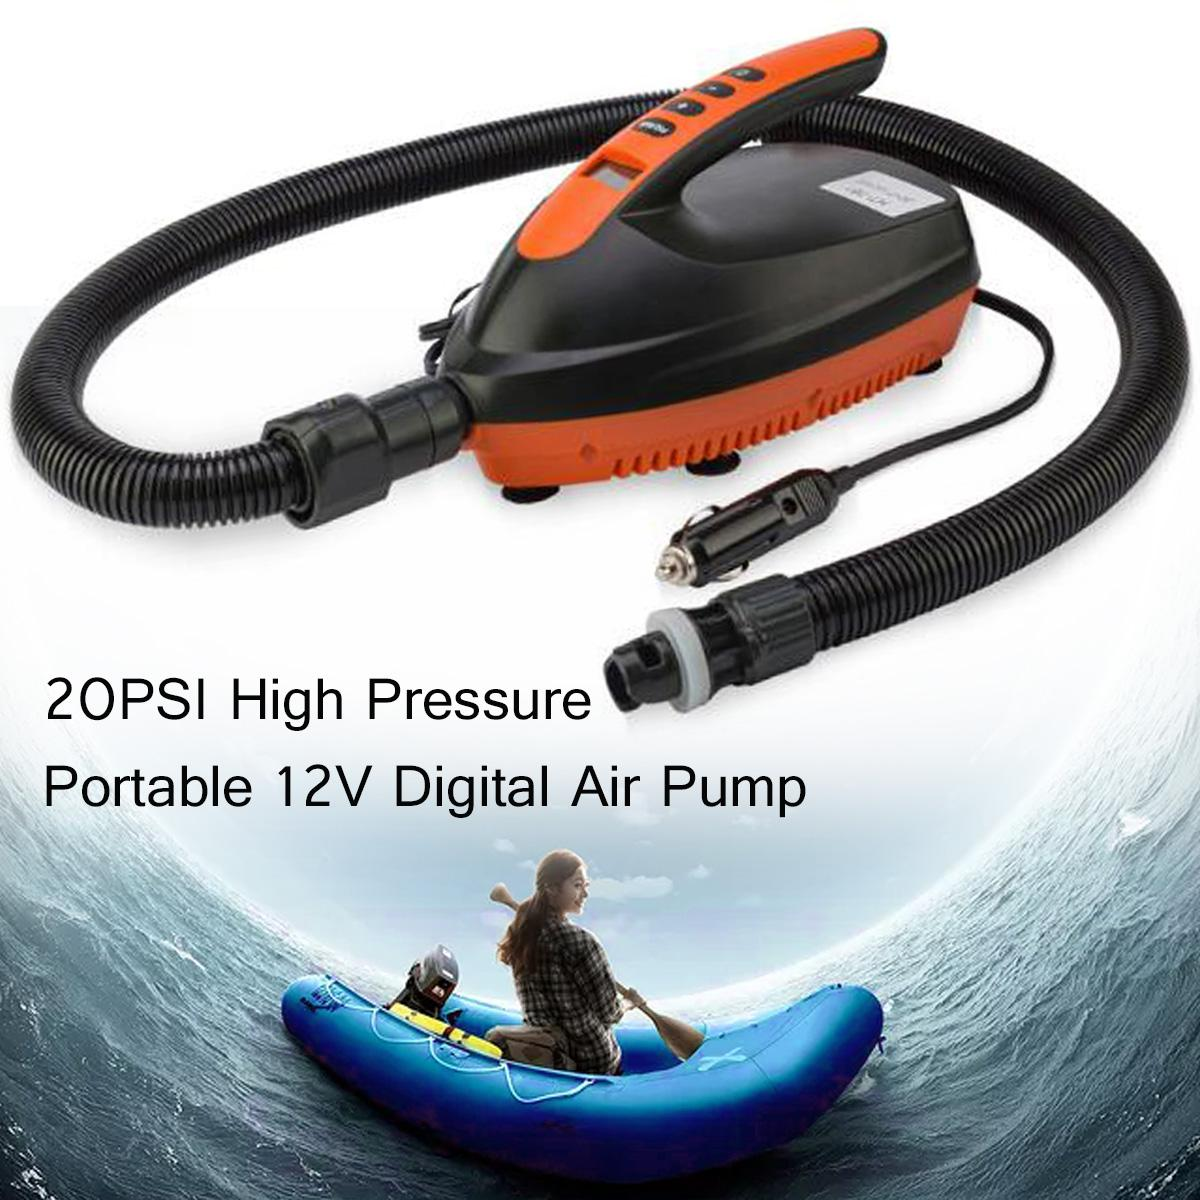 12V 20PS Portable Car Inflatable Pump High Pressure Portable Digital Electric Air Pump With 6 Nozzles for SUP Kayak Paddle Board12V 20PS Portable Car Inflatable Pump High Pressure Portable Digital Electric Air Pump With 6 Nozzles for SUP Kayak Paddle Board